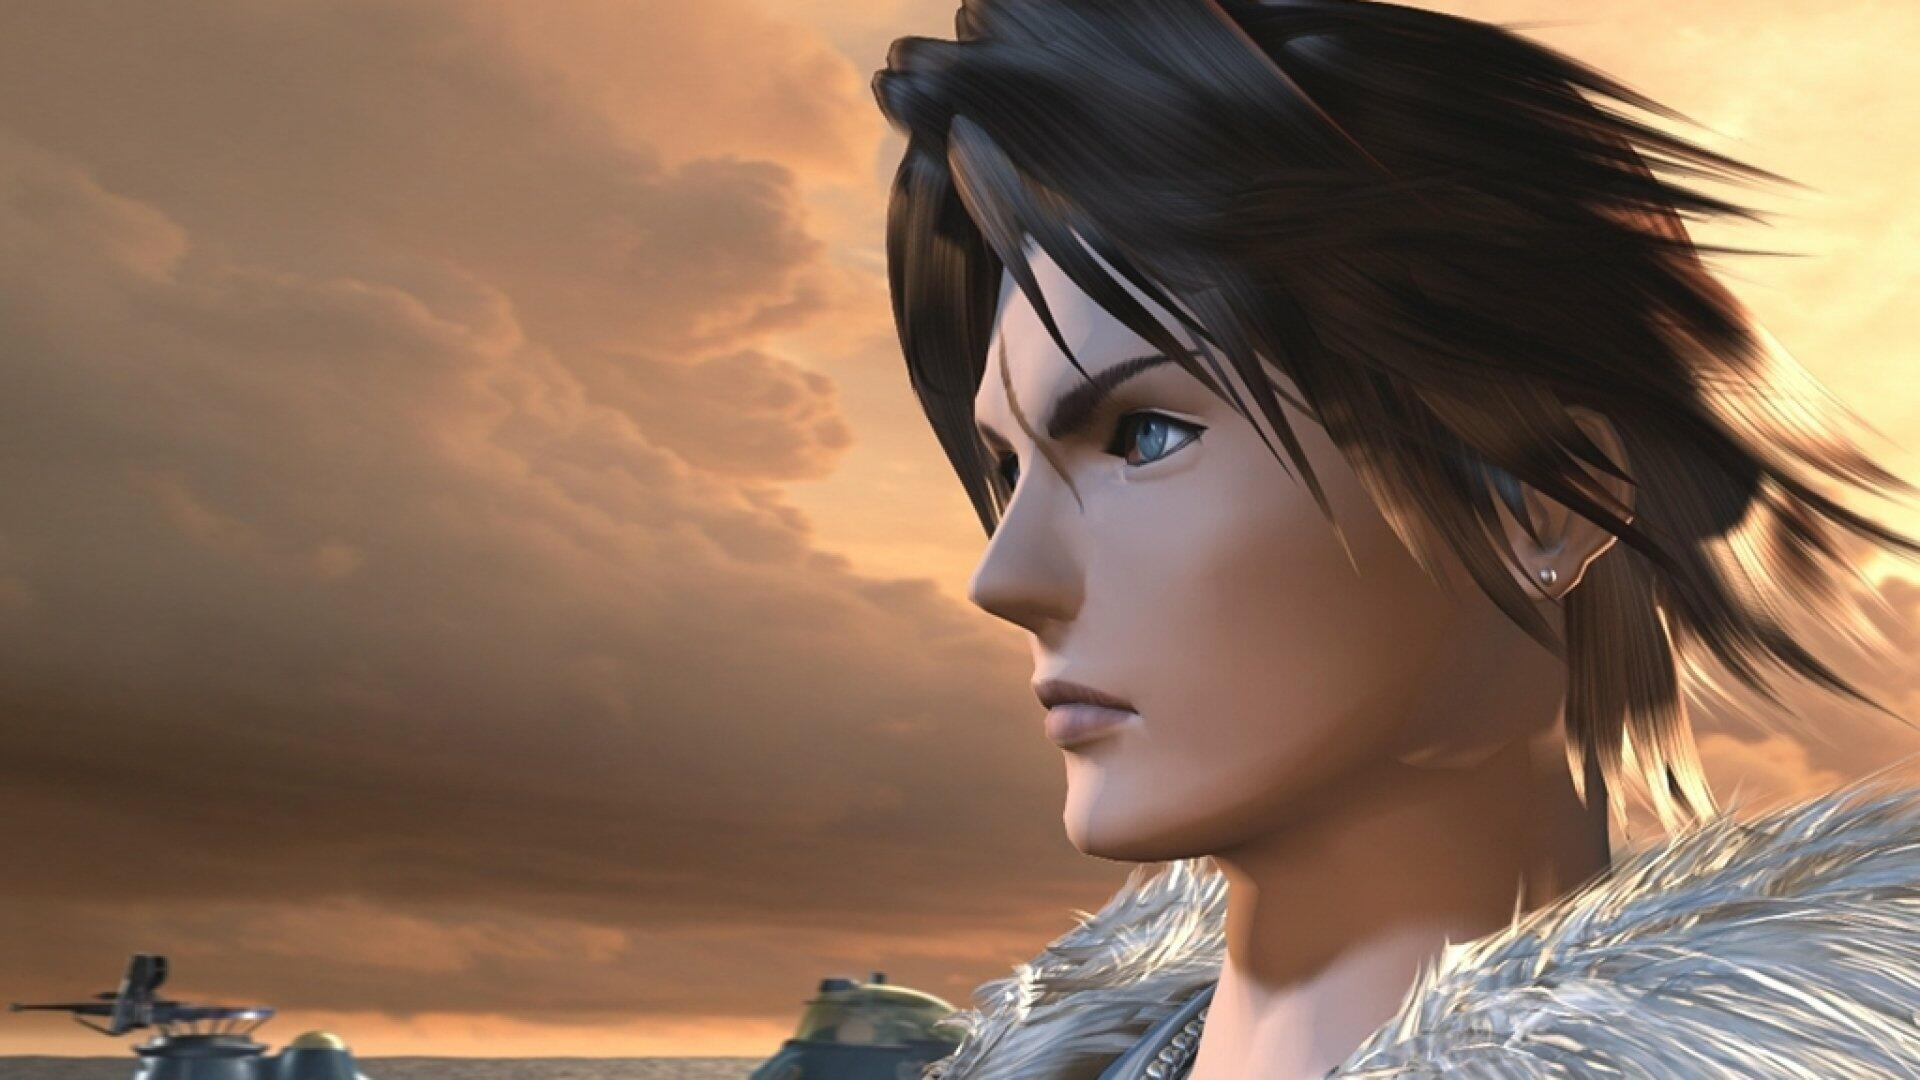 Final Fantasy 8 Finally Getting Remastered for PS4, Switch, Xbox One, and PC Later This Year